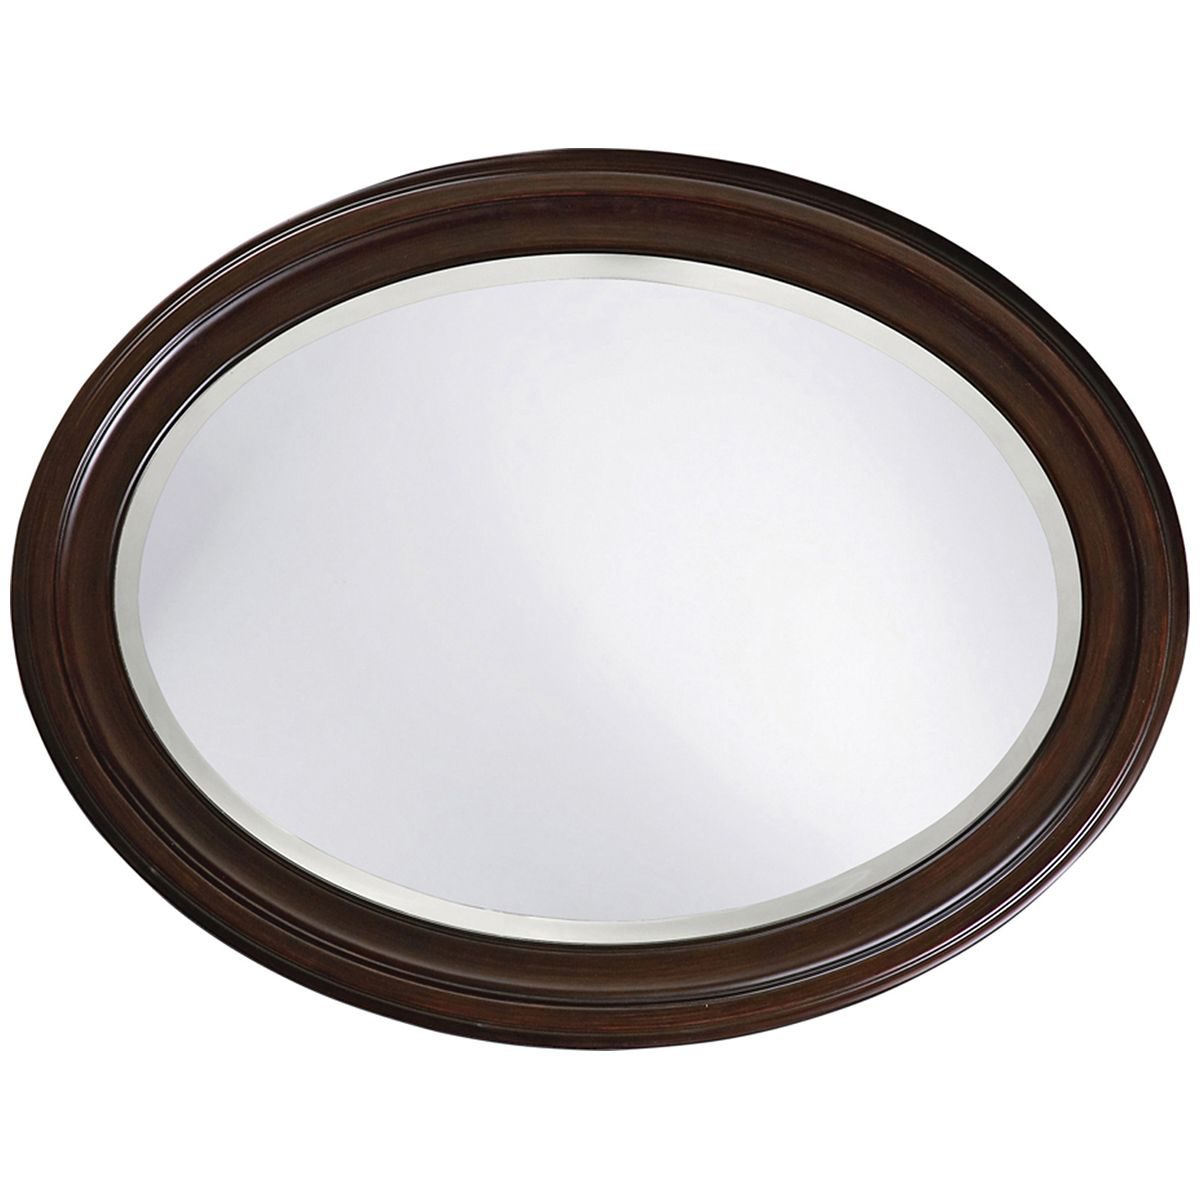 Howard Elliott George Chocolate Brown Mirror 40110